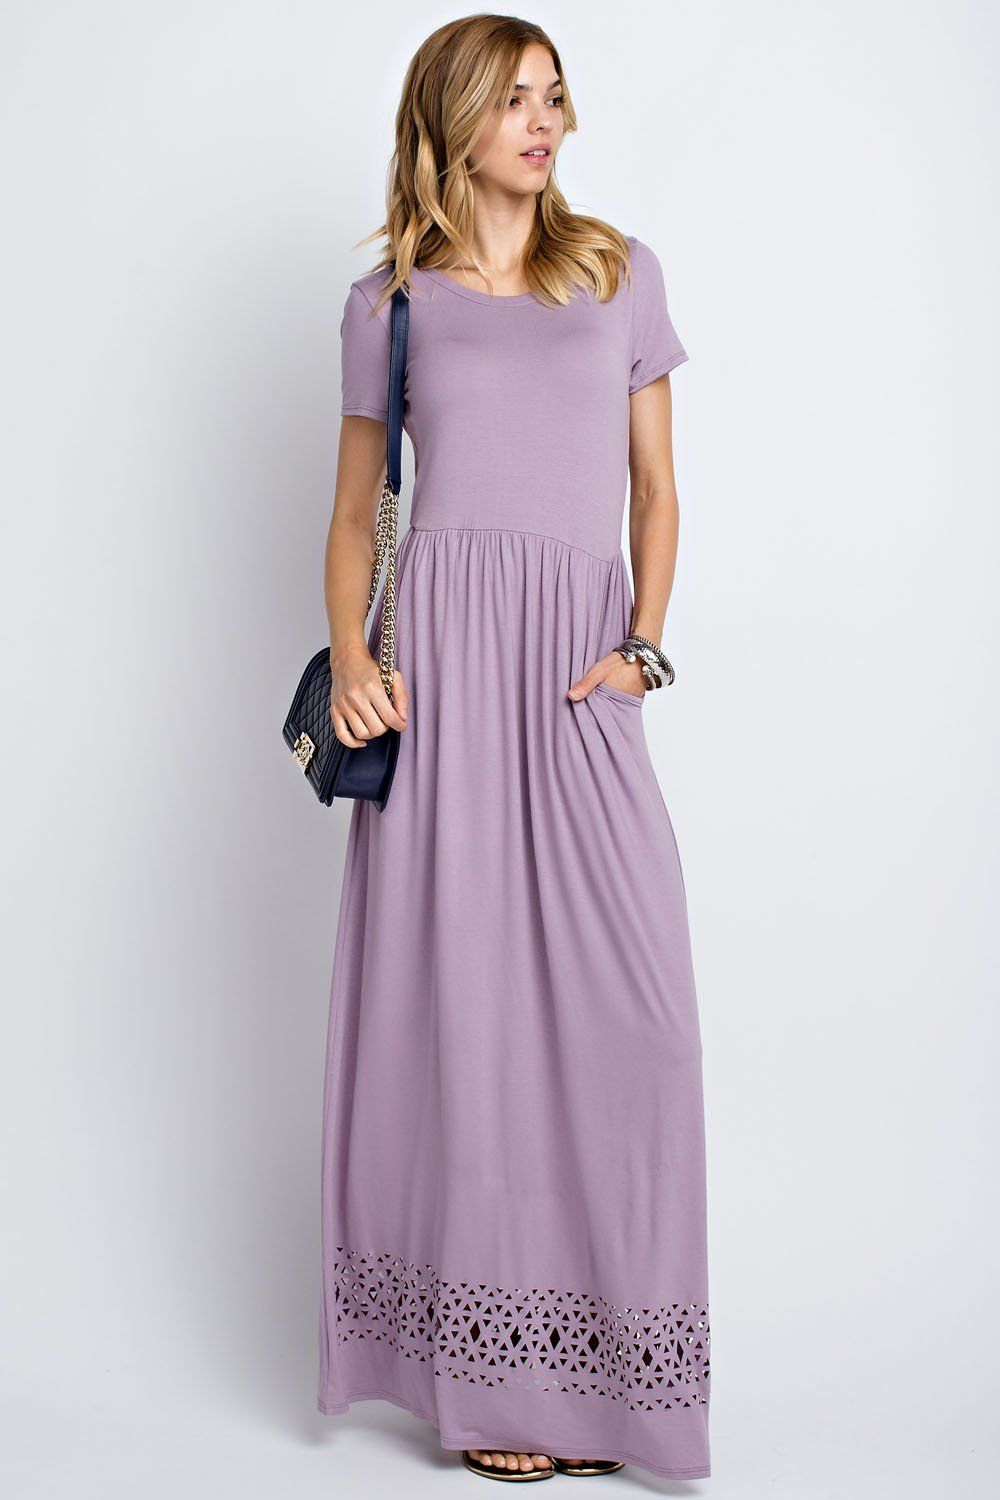 1cf91067be7 We have found a maxi dress in the most beautiful shade of purple. Plus it  has short sleeves and side pockets! It features a tribal pattern cut-out  along the ...